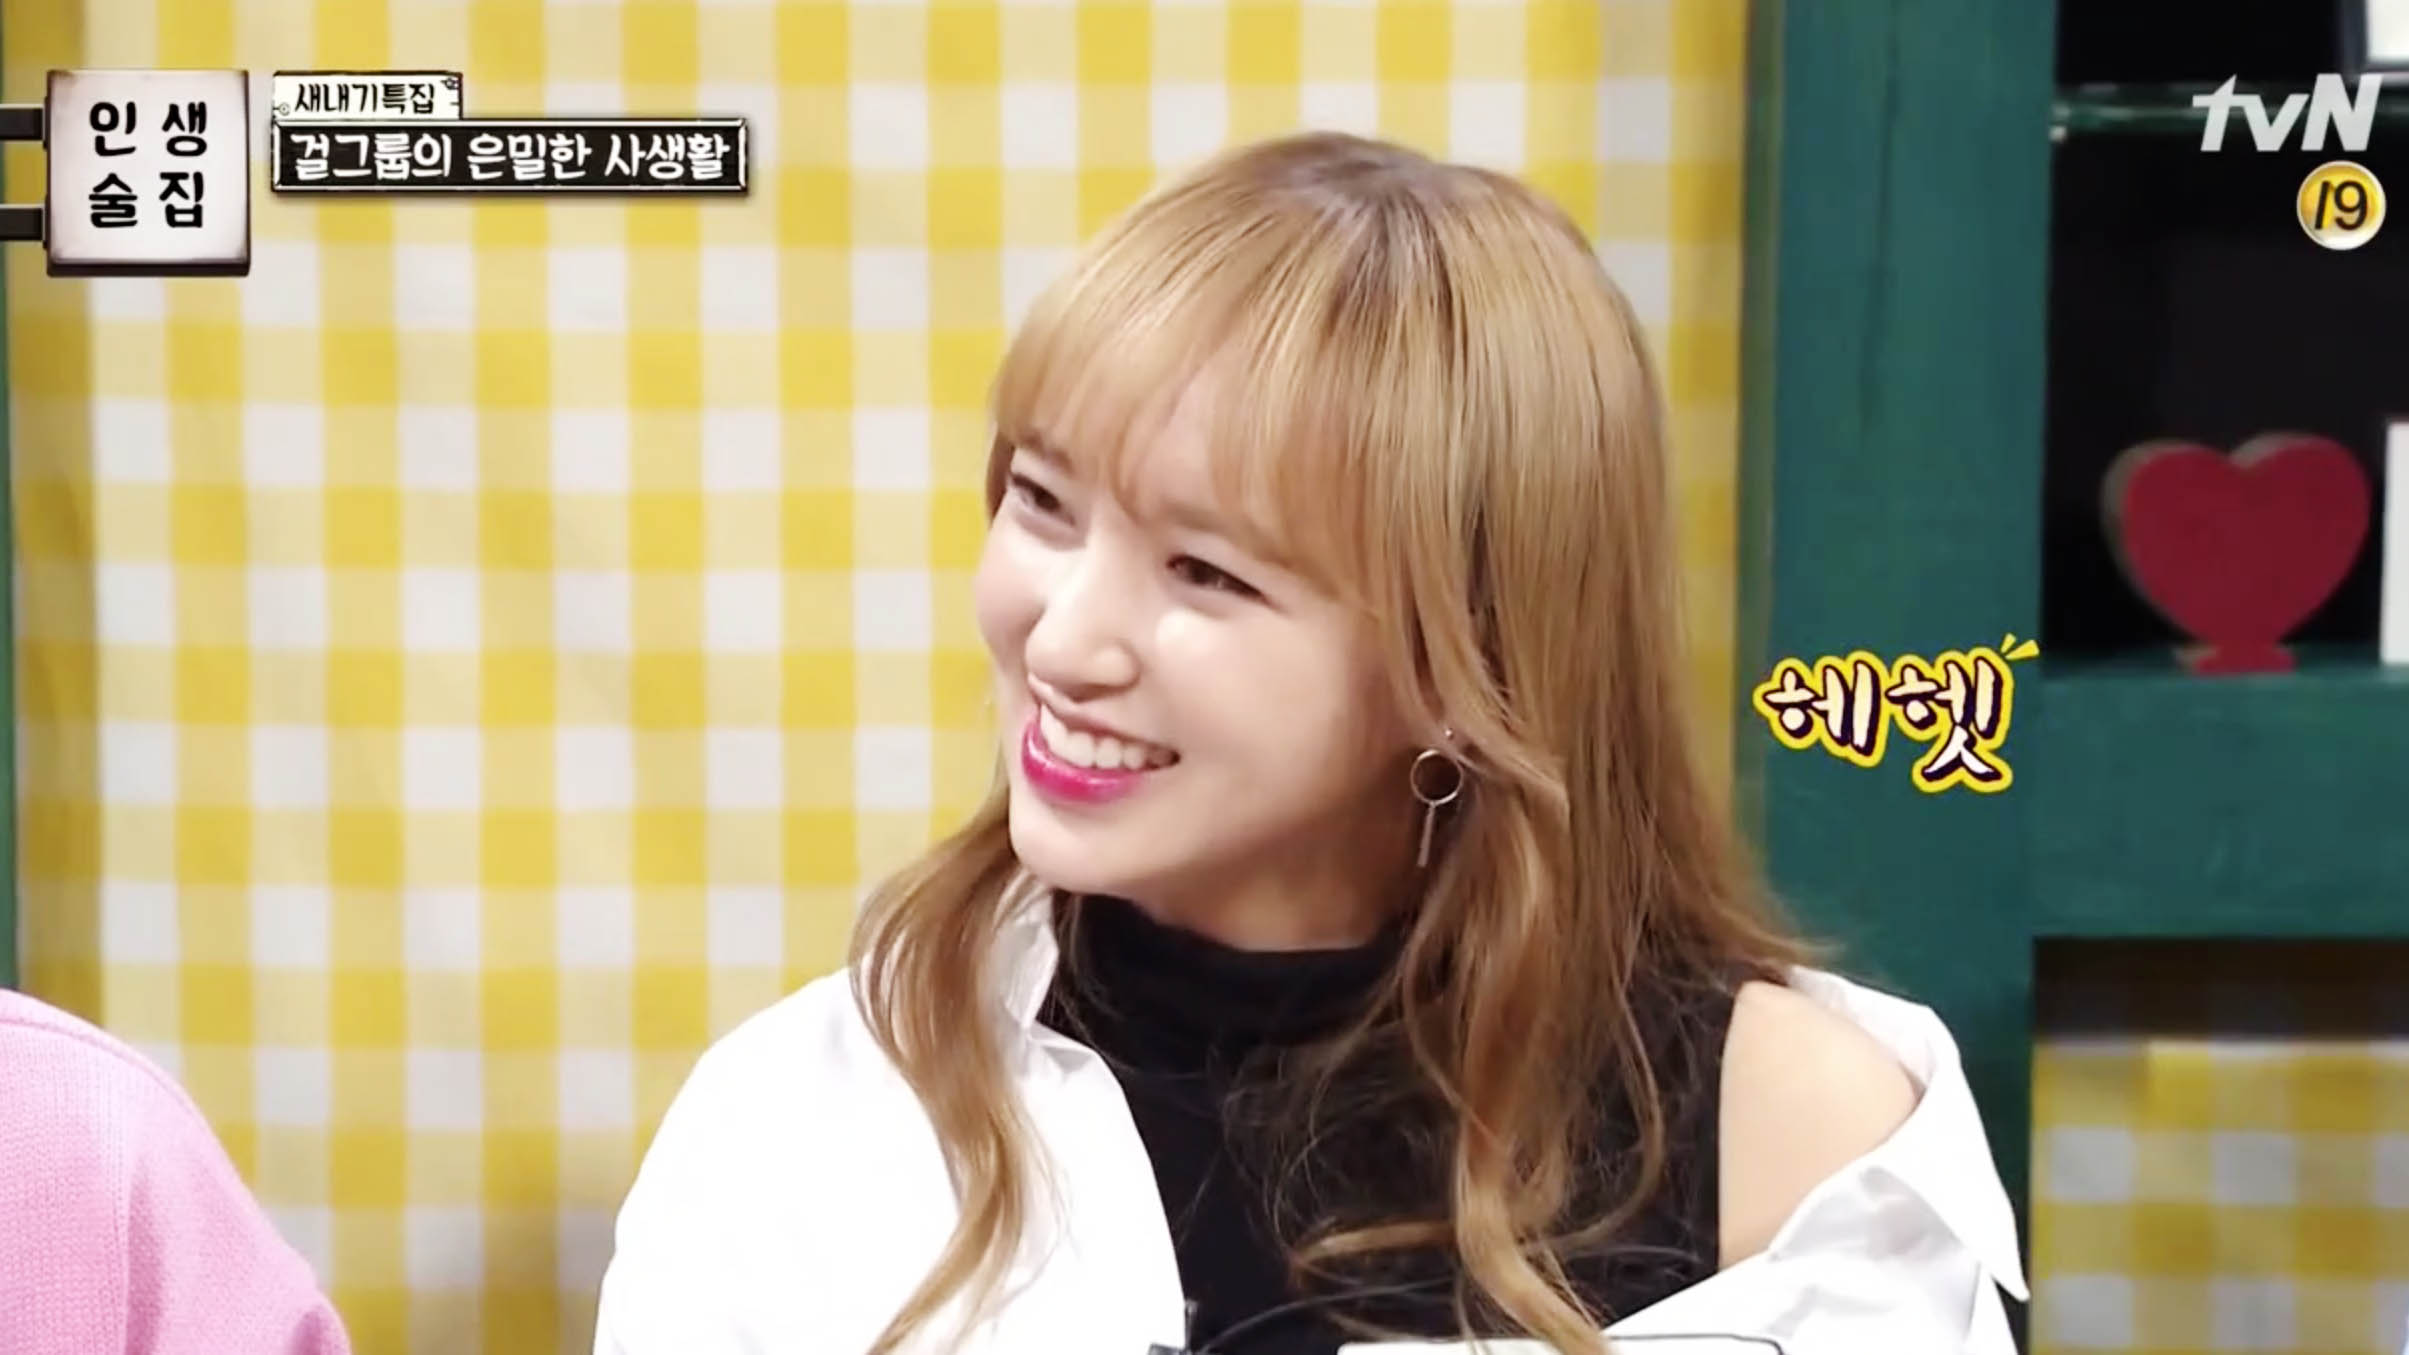 Cosmic Girls' Cheng Xiao Reveals Hilarious Story About Getting Caught Ordering Delivery Food